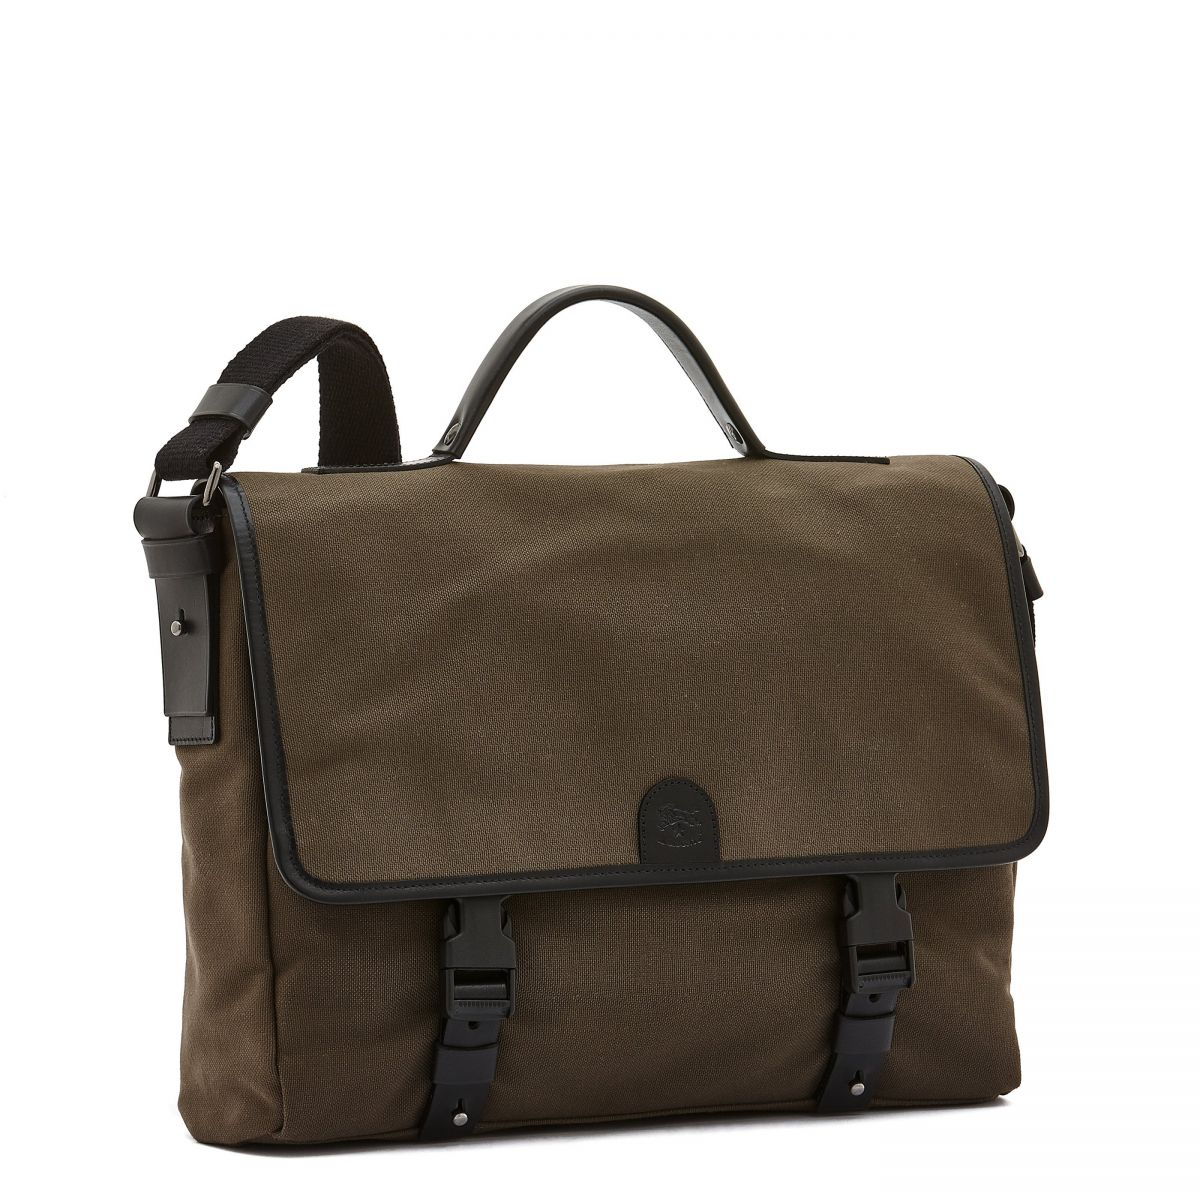 Briefcase  in Technical Fabric BBC044 color Khaki/Black | Details